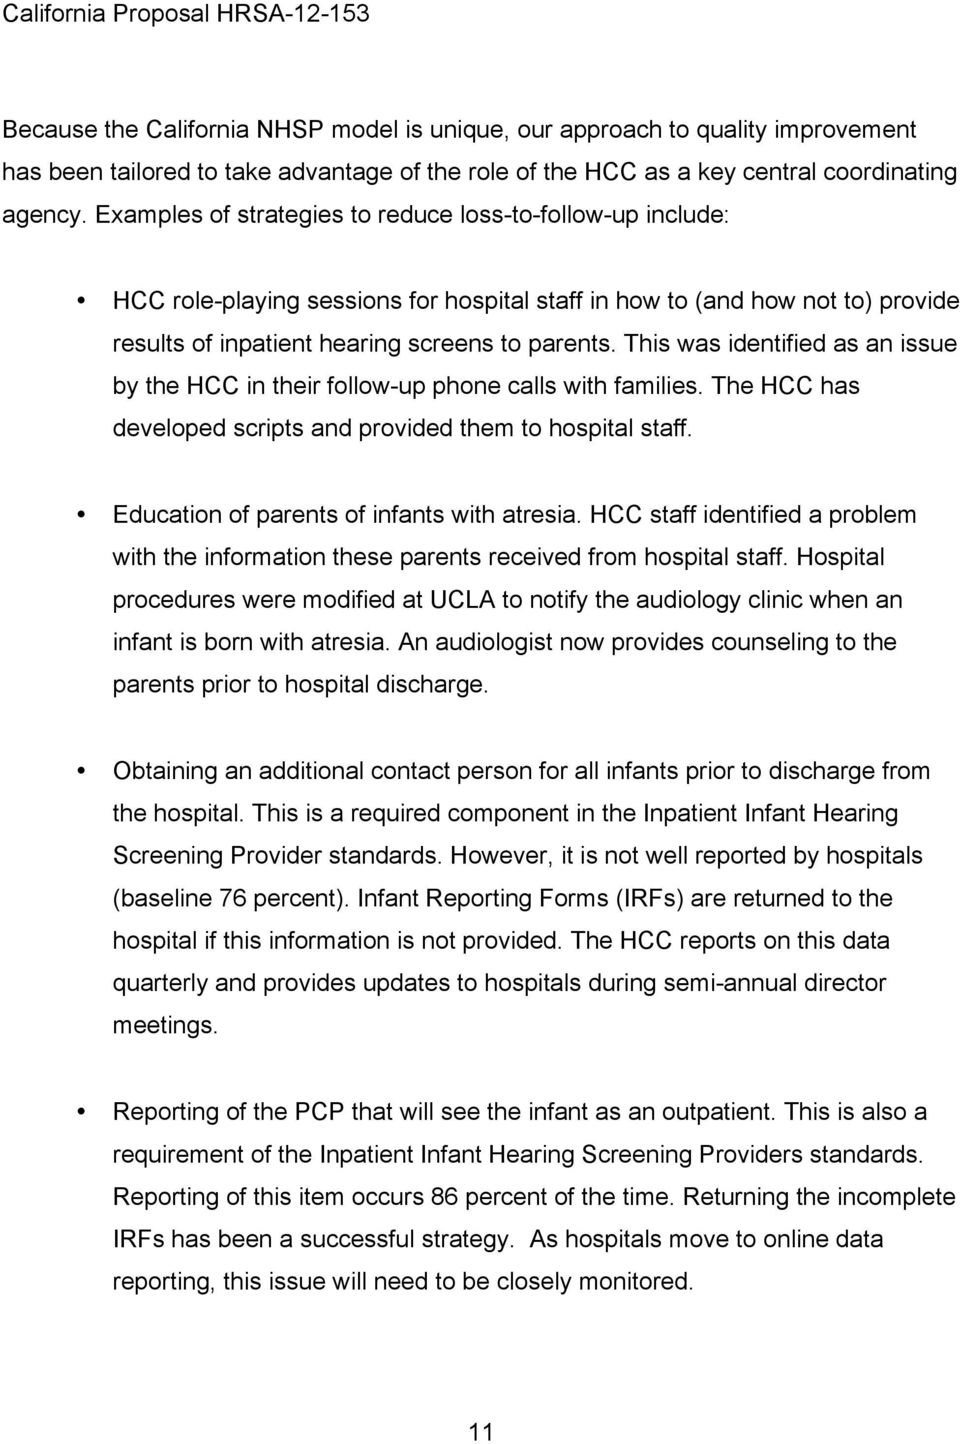 This was identified as an issue by the HCC in their follow-up phone calls with families. The HCC has developed scripts and provided them to hospital staff.